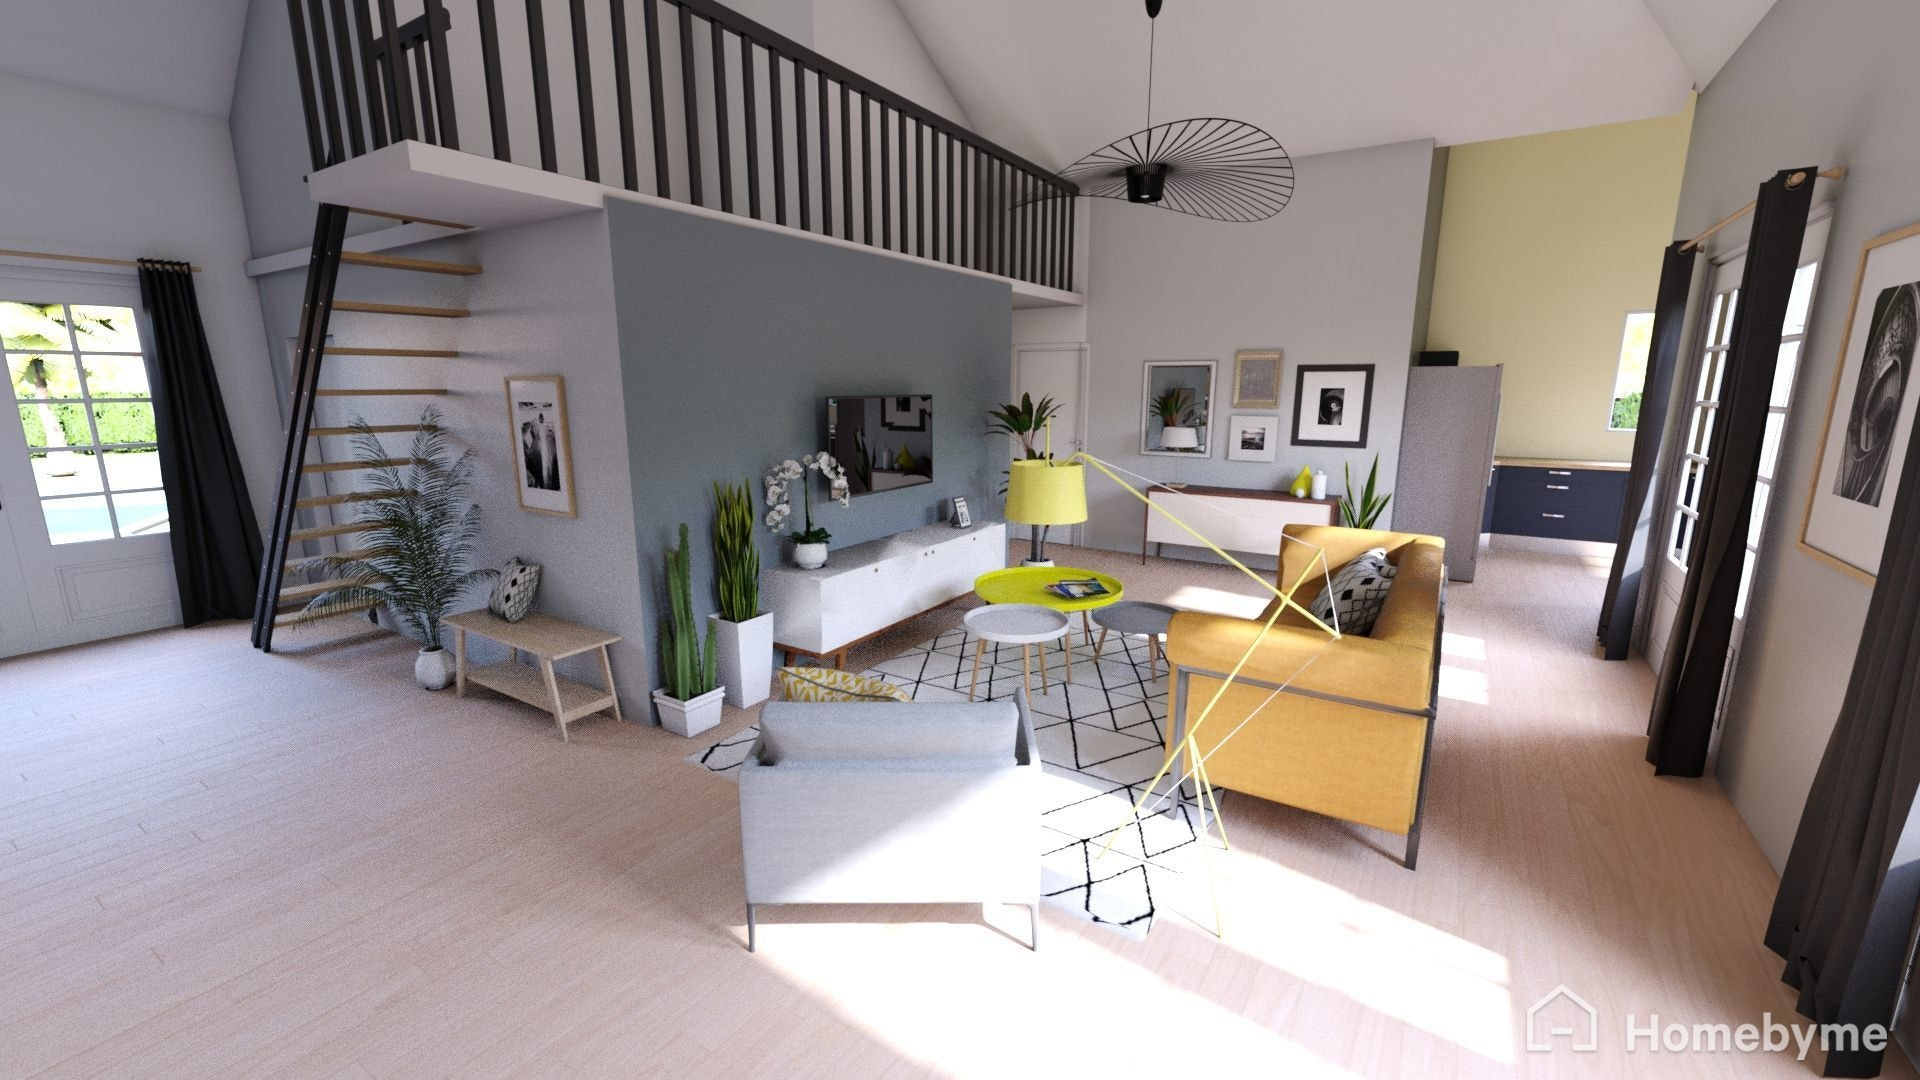 👋🏼i wanted to share with you this 3d online tool homebyme you can easily create furnish decorate any project in 3d and generate hd images in 2 clicks